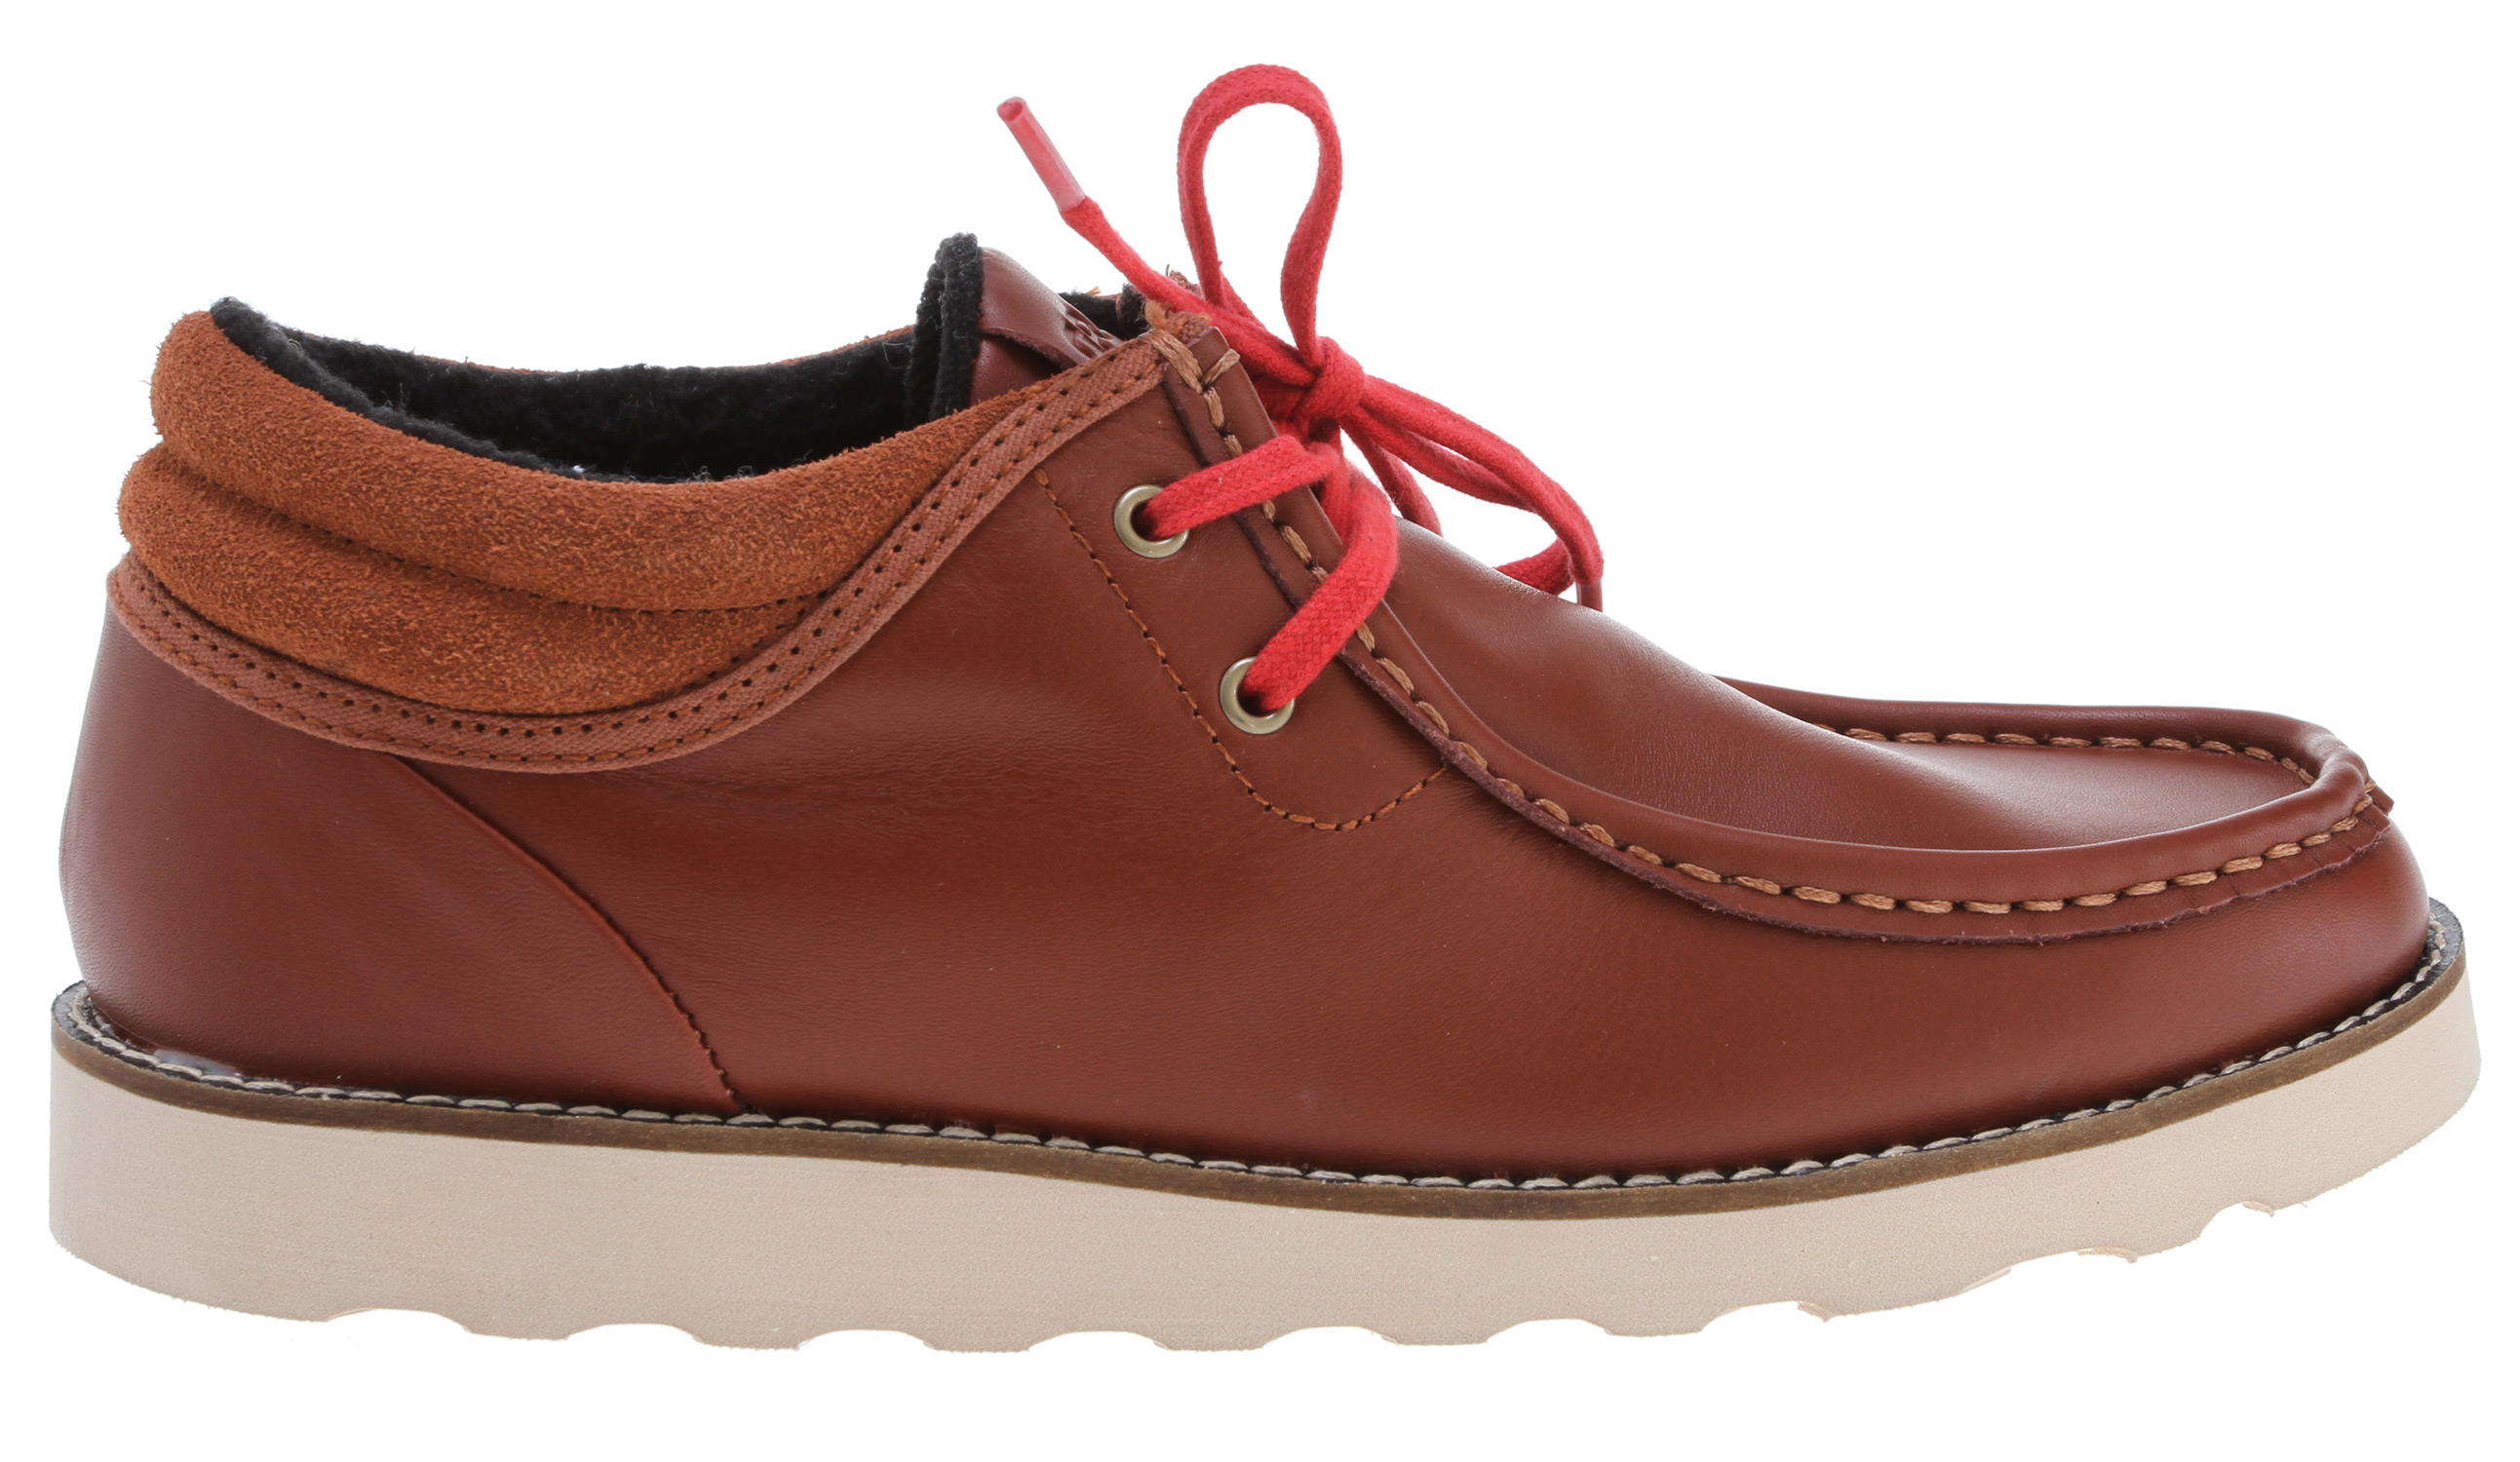 Key Features of the Gravis Mason Shoes: premium suede uppers gusseted tongue construction insulated terry cloth lining comfortable latex footbed with arch support durable one piece blown rubber outsole - $58.95